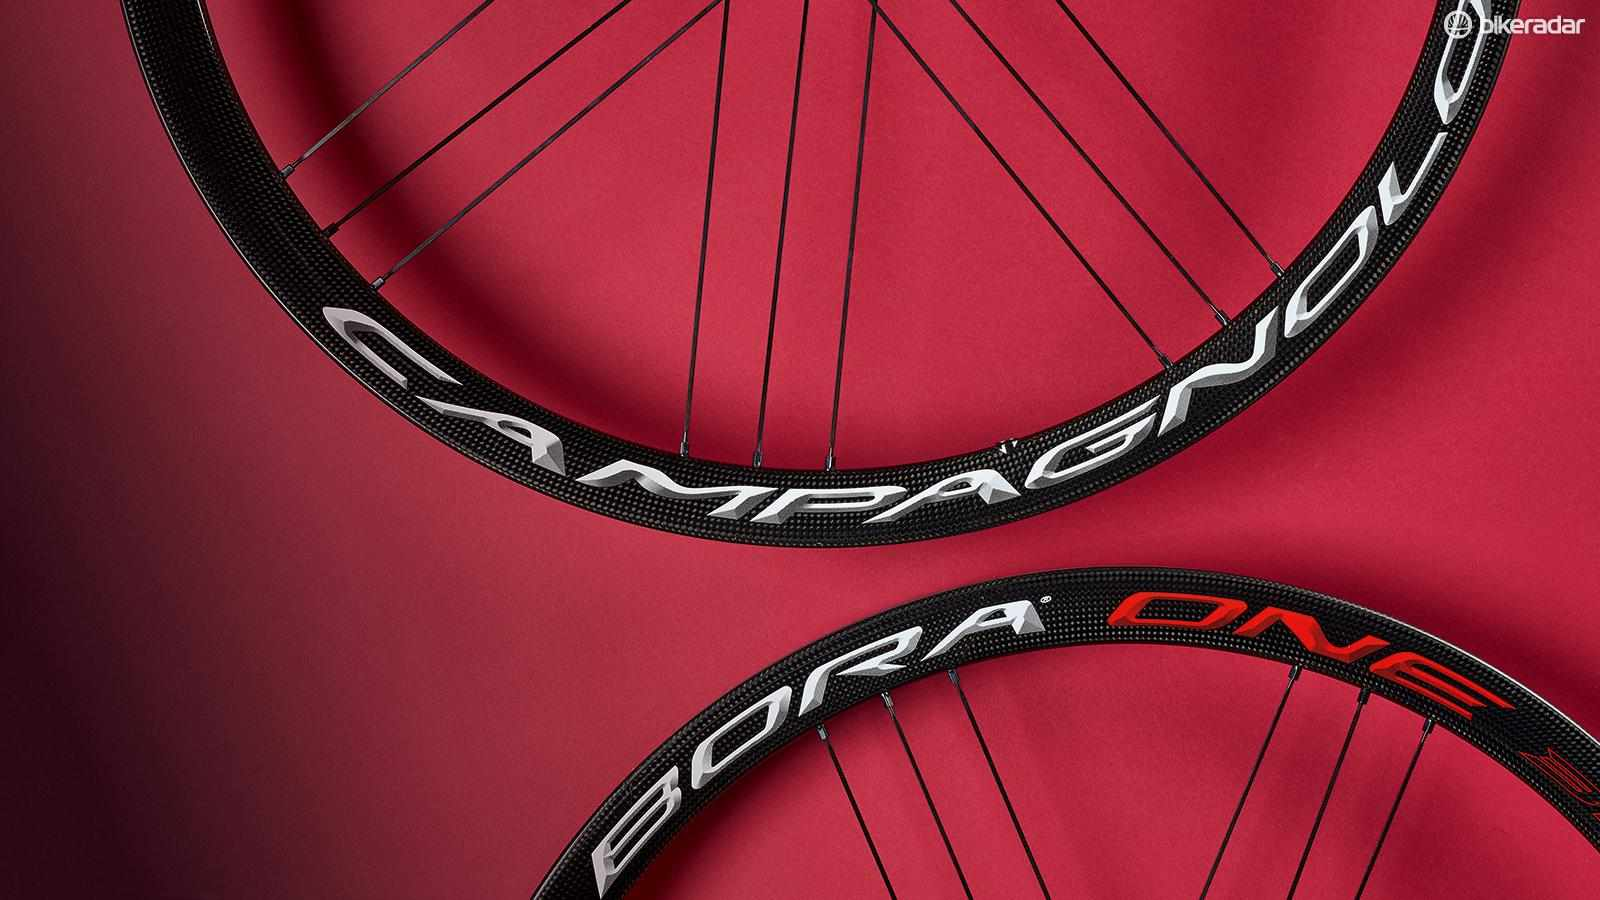 Campagnolo Bora One 35 DB wheels | the latest Campagnolo groupset, components, wheelset and other reviews